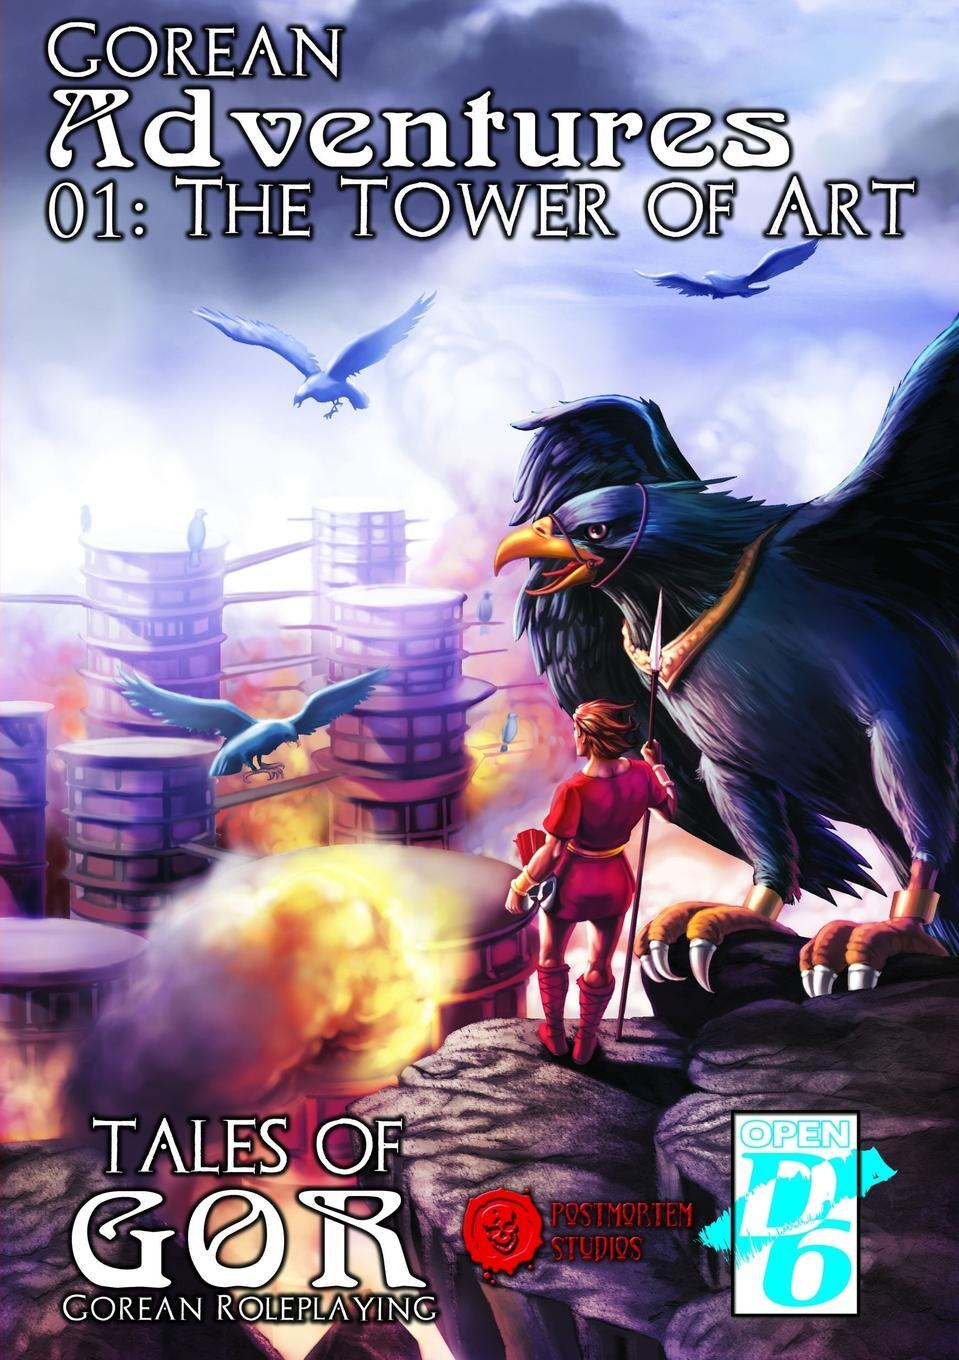 Книга 01. The Tower of Art. James Desborough